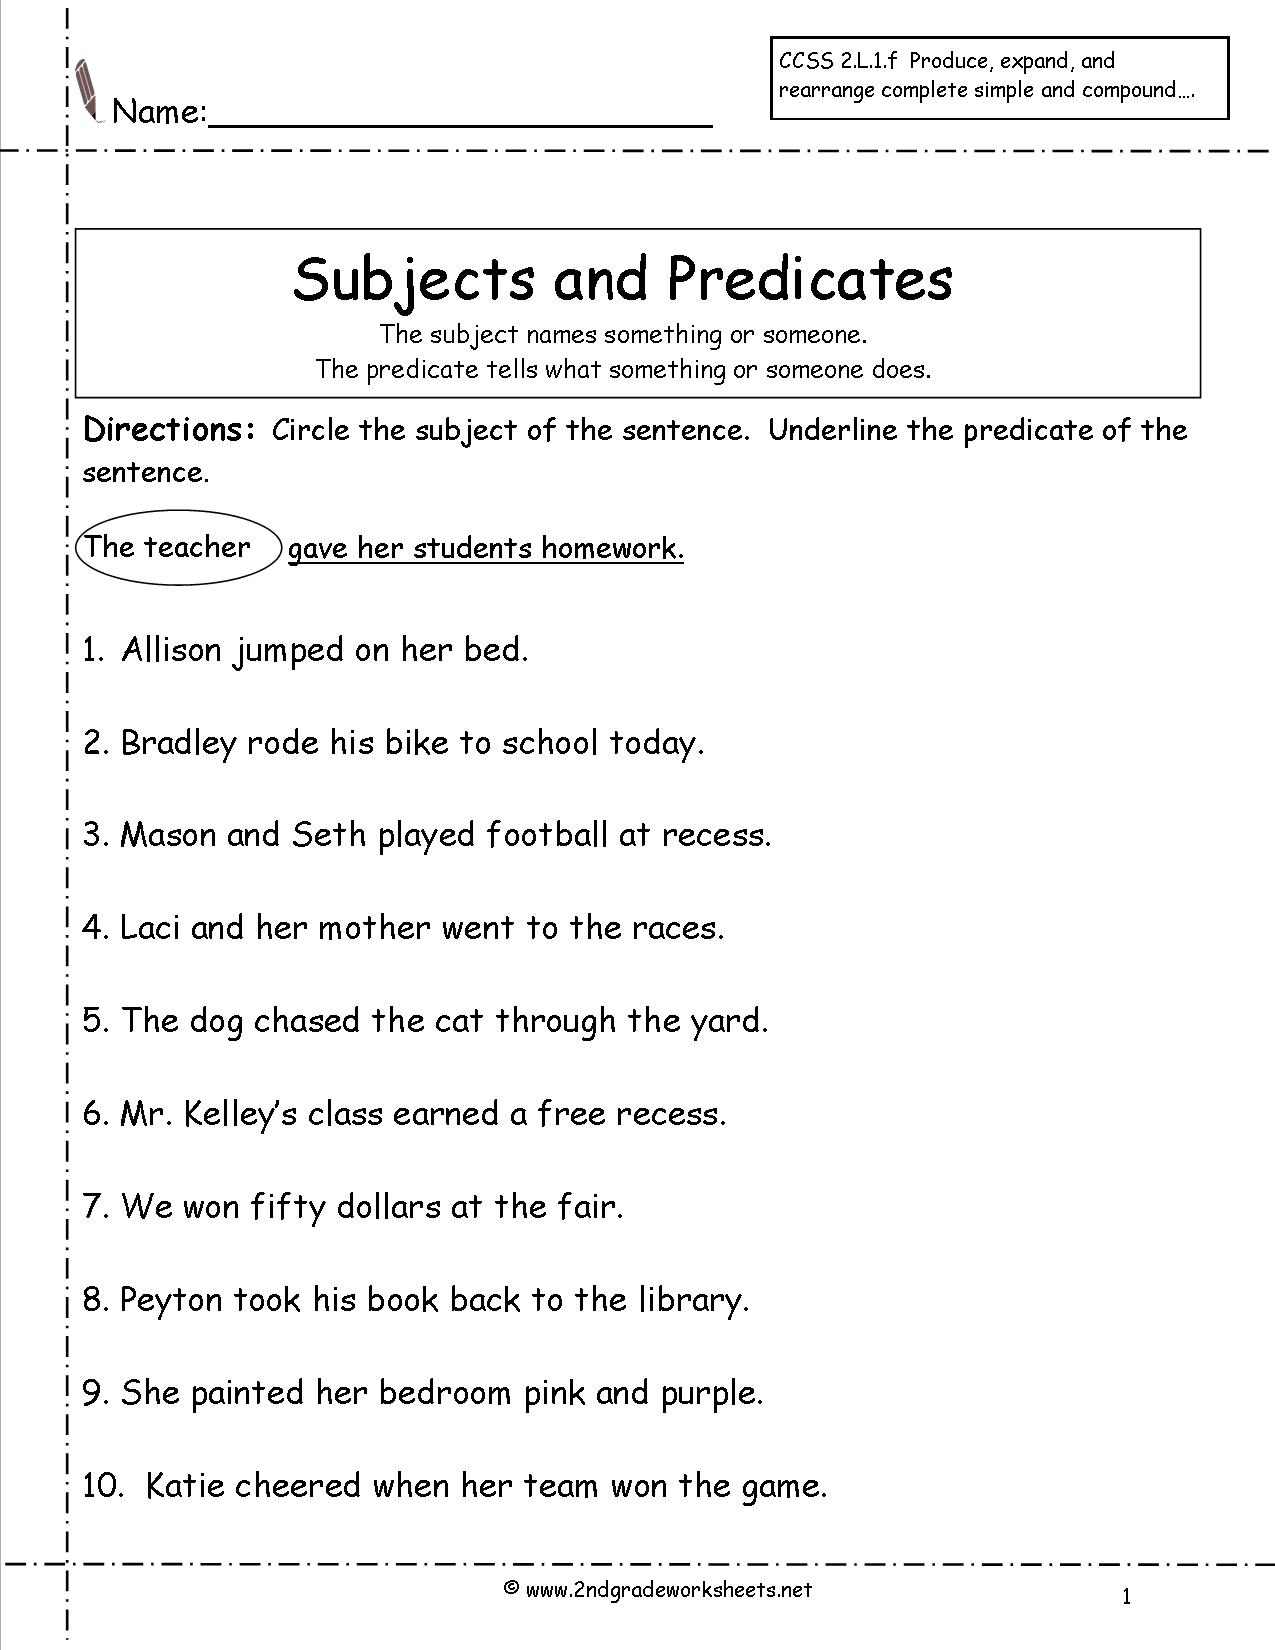 18 Best Images Of Compound Sentences Worksheet 3rd Grade